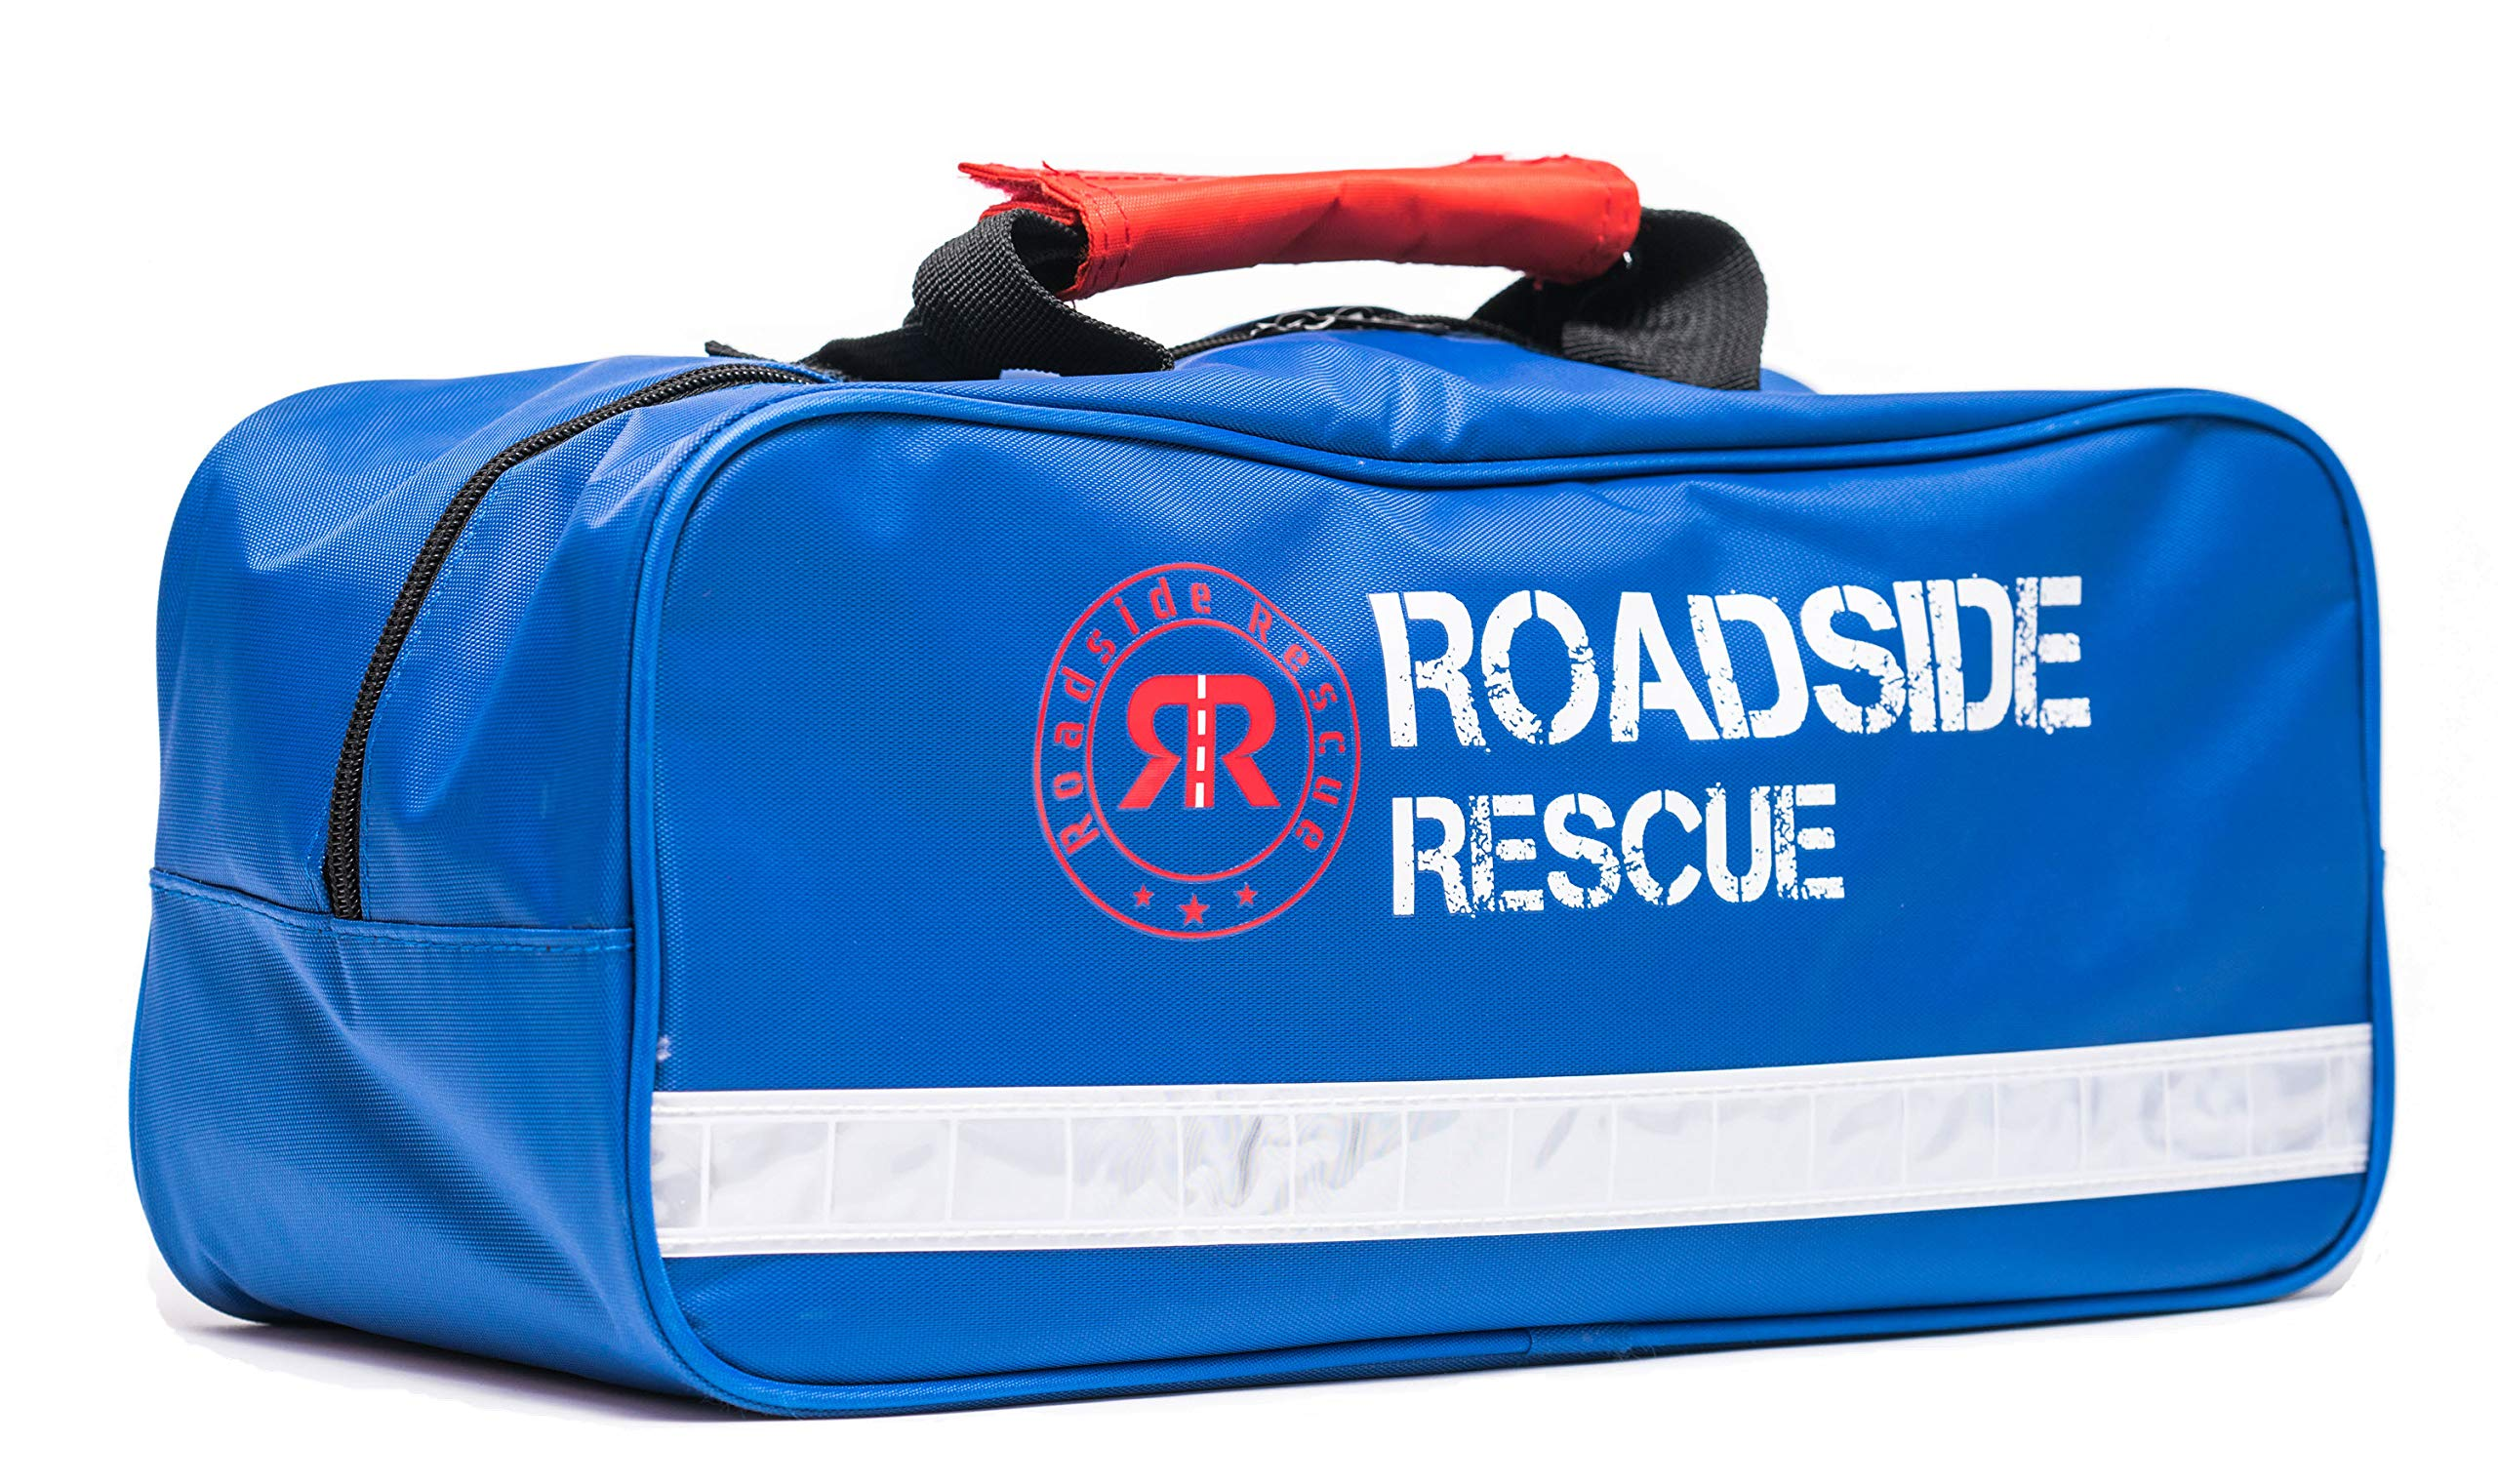 Roadside Emergency Assistance Kit - Packed 110 Premium Pieces & Rugged Bag - Car, Truck & RV Kit with Heavy Duty Jumper Cables • Heavy Duty Tow Strap • Safety Triangle • First Aid & more by Roadside Rescue Emergency Assistance Kits